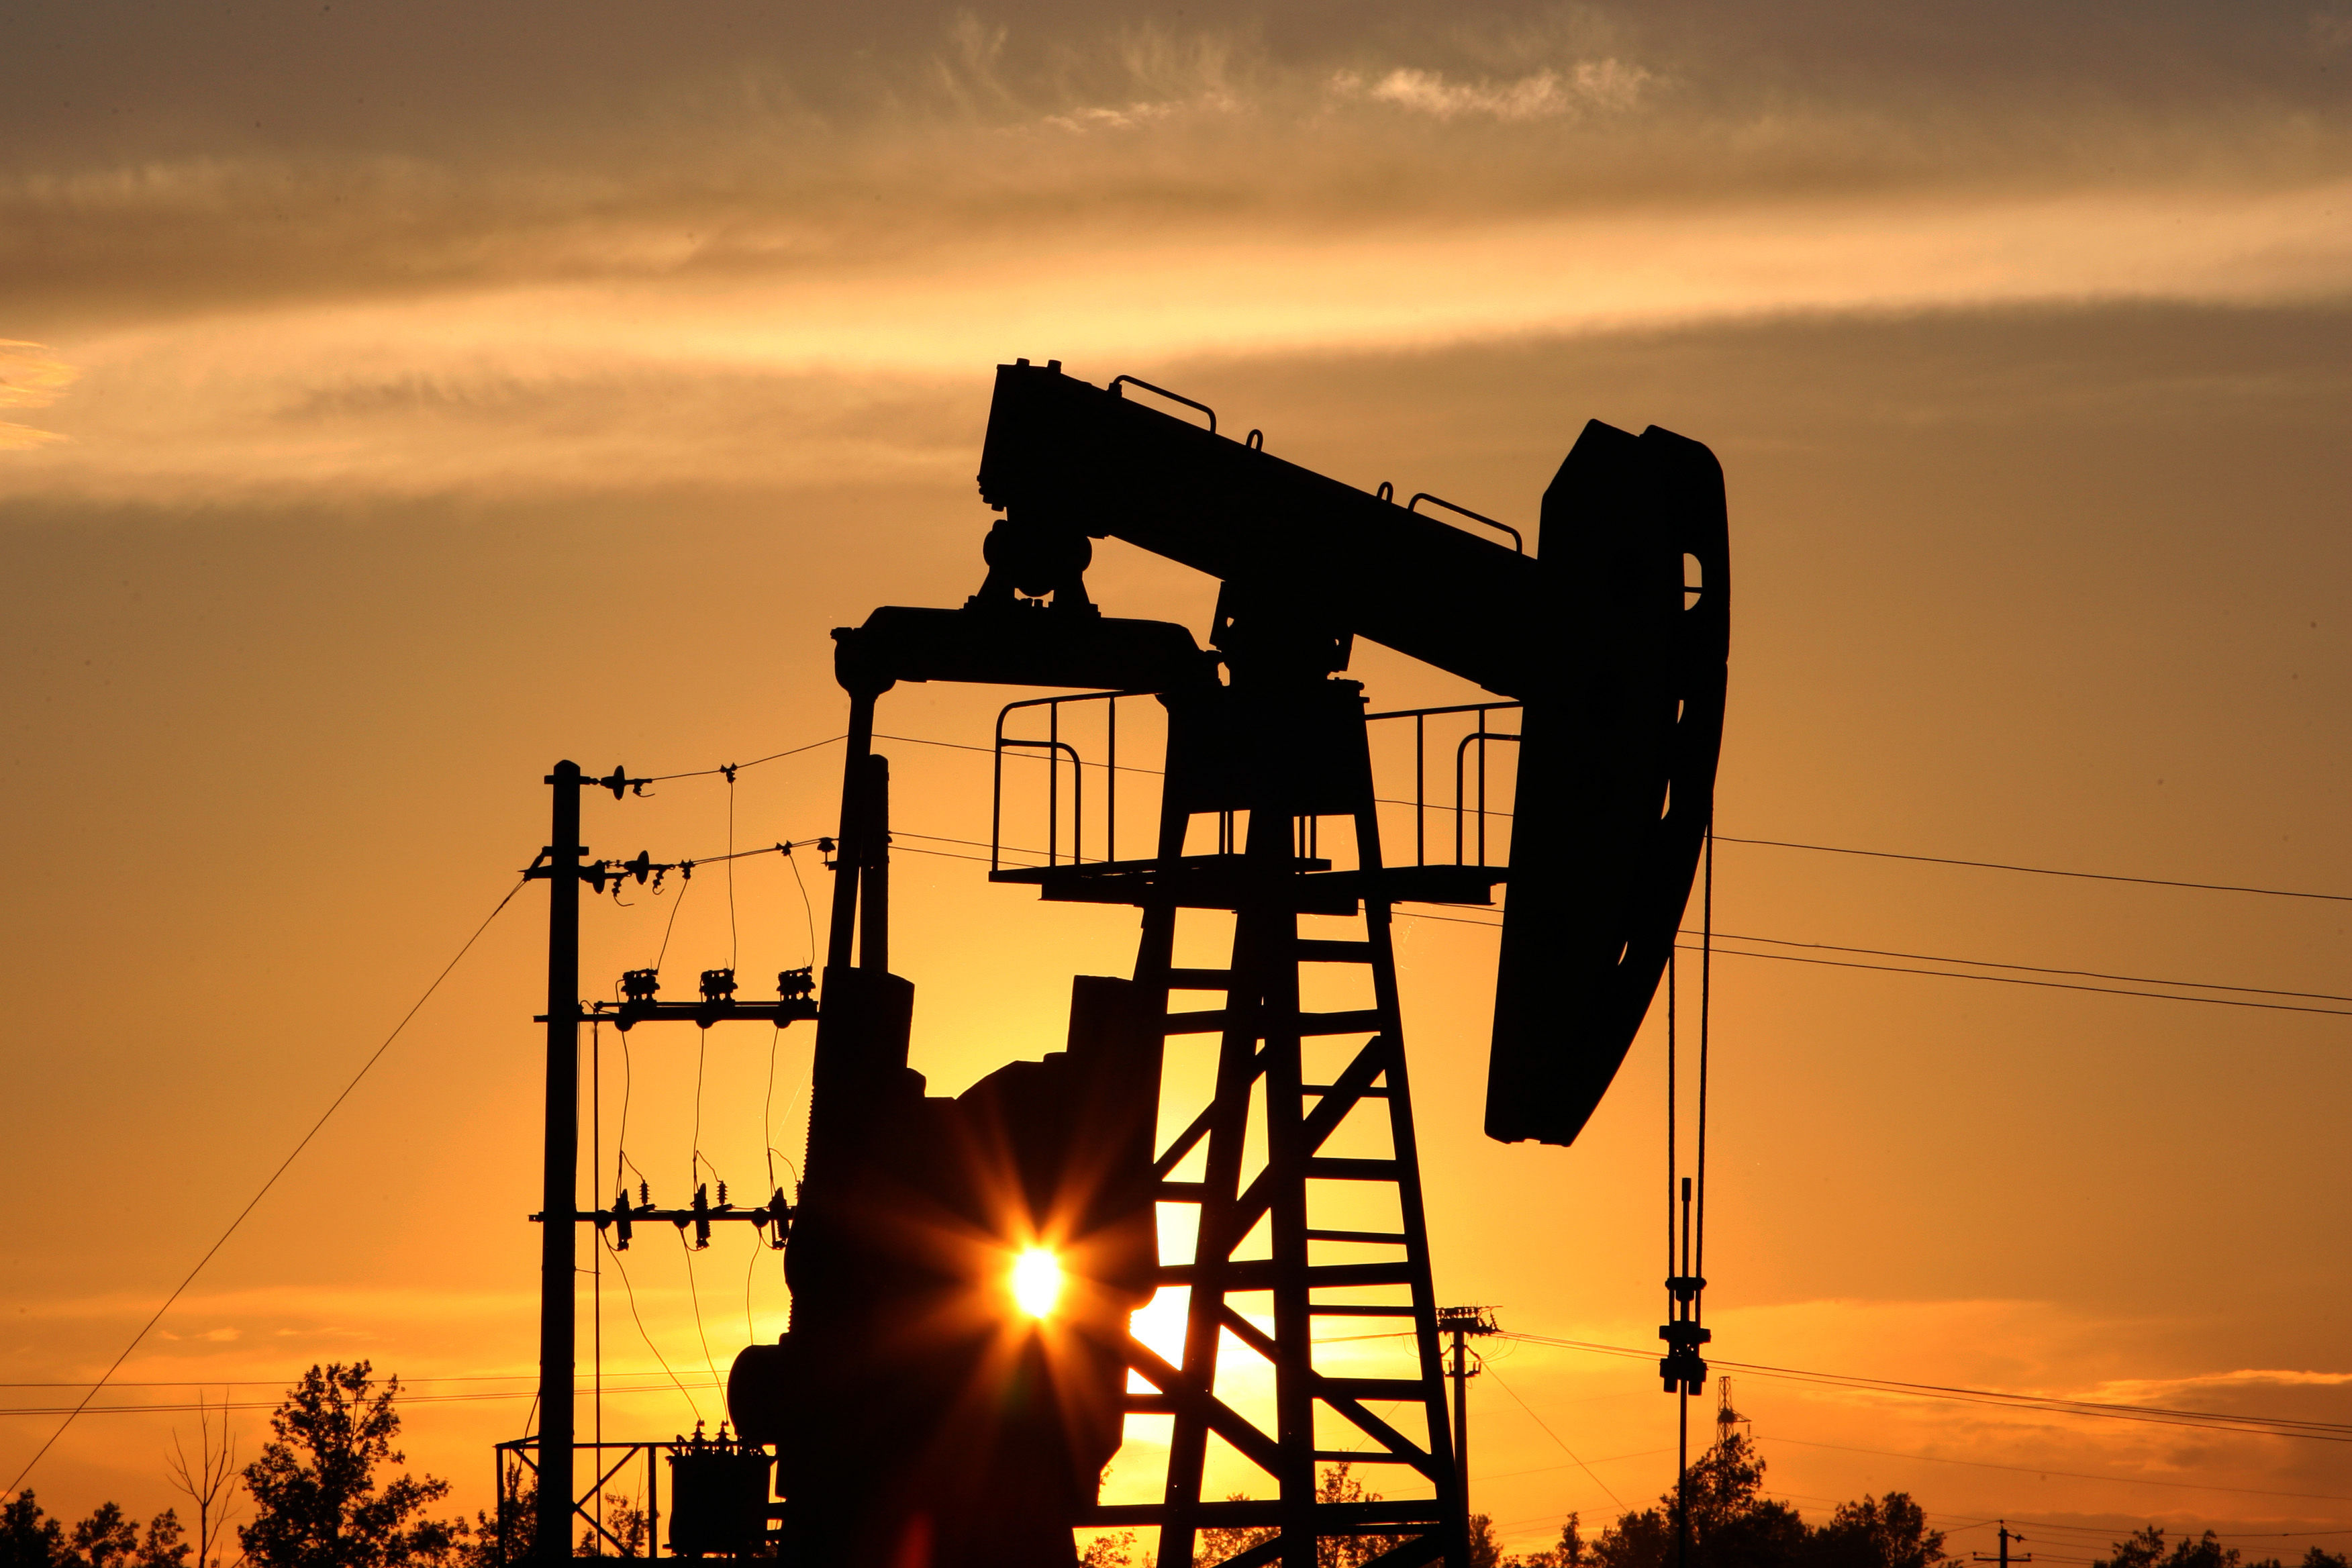 A CNPC 'nodding donkey' oil pump is seen at sunset in an oilfield outside Daqing, Heilongjiang province, China.